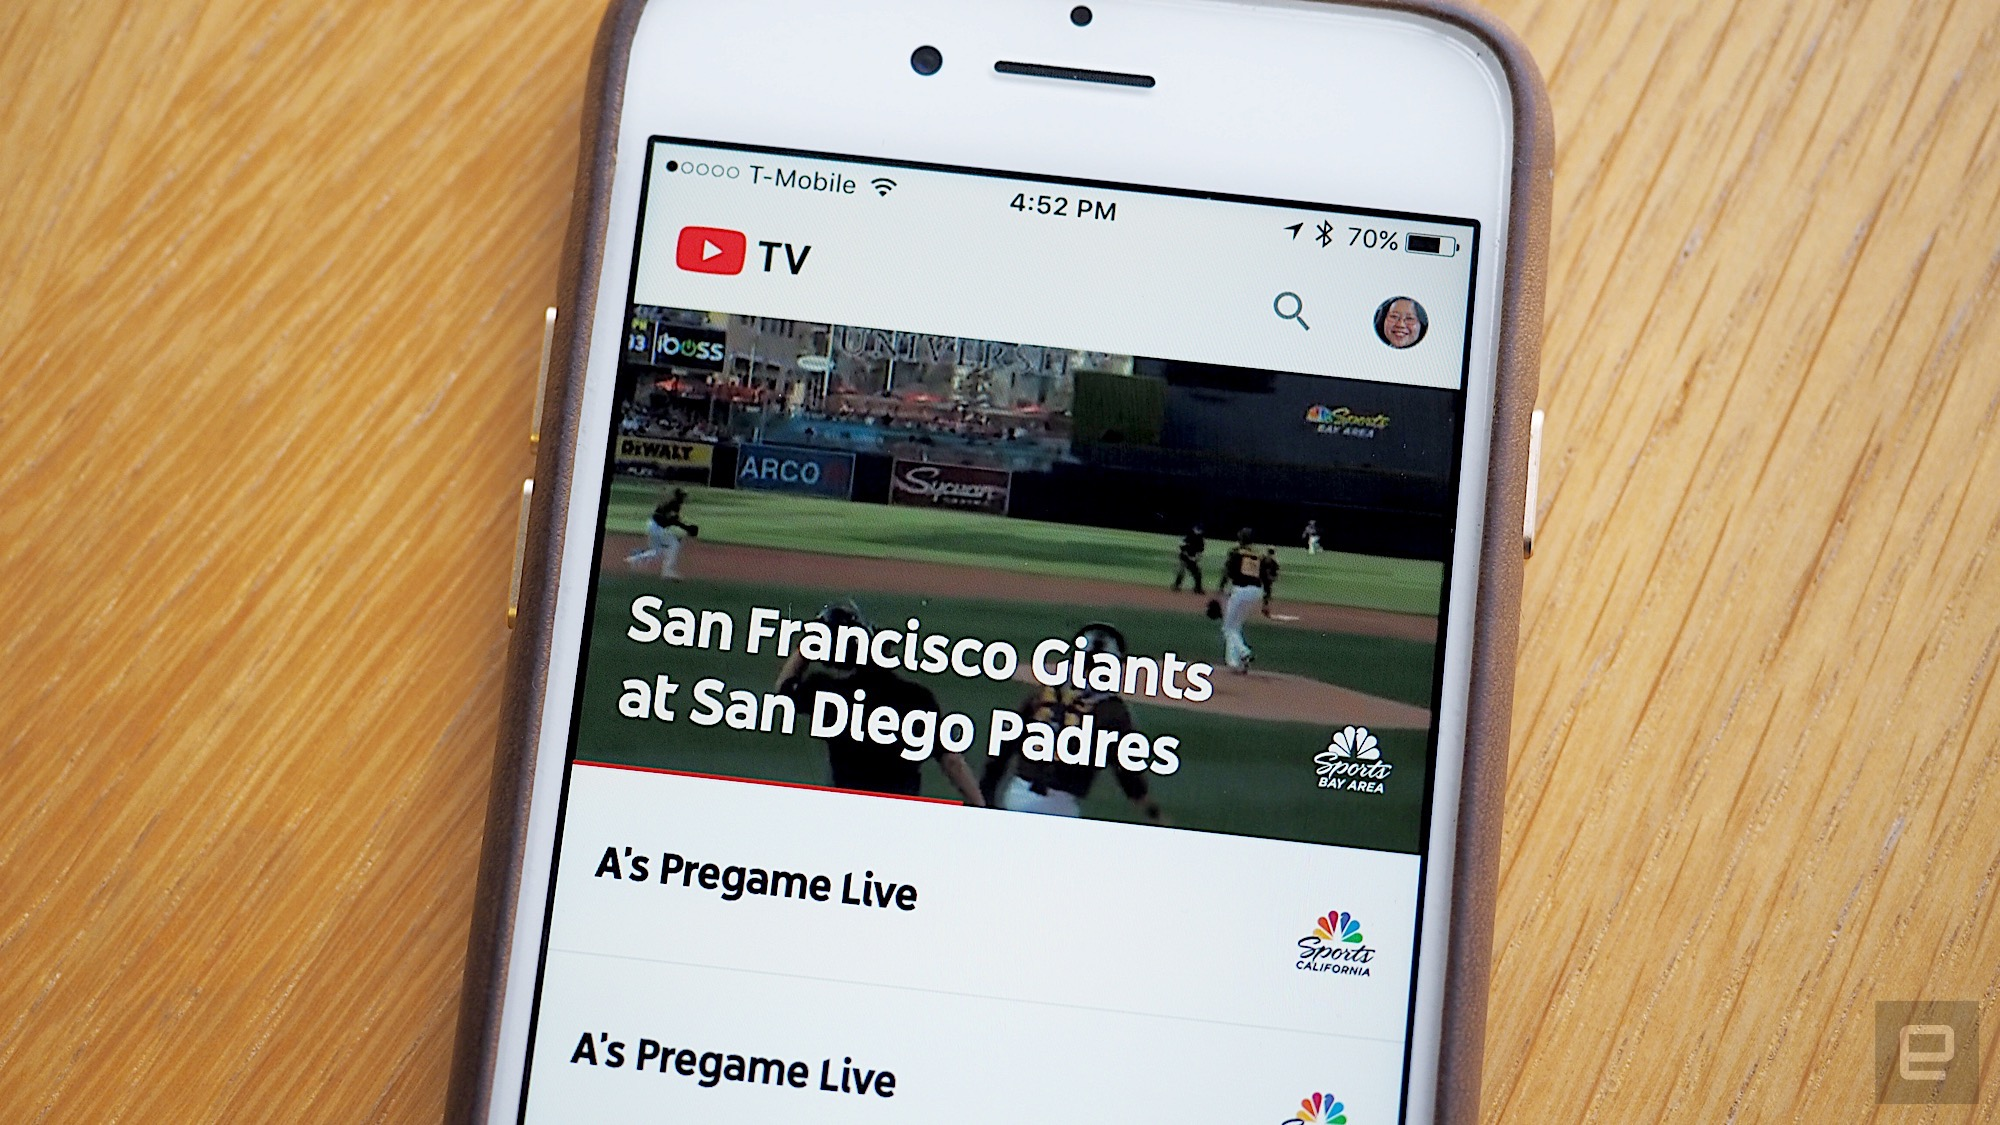 YouTube TV made this baseball fan finally cut the cord